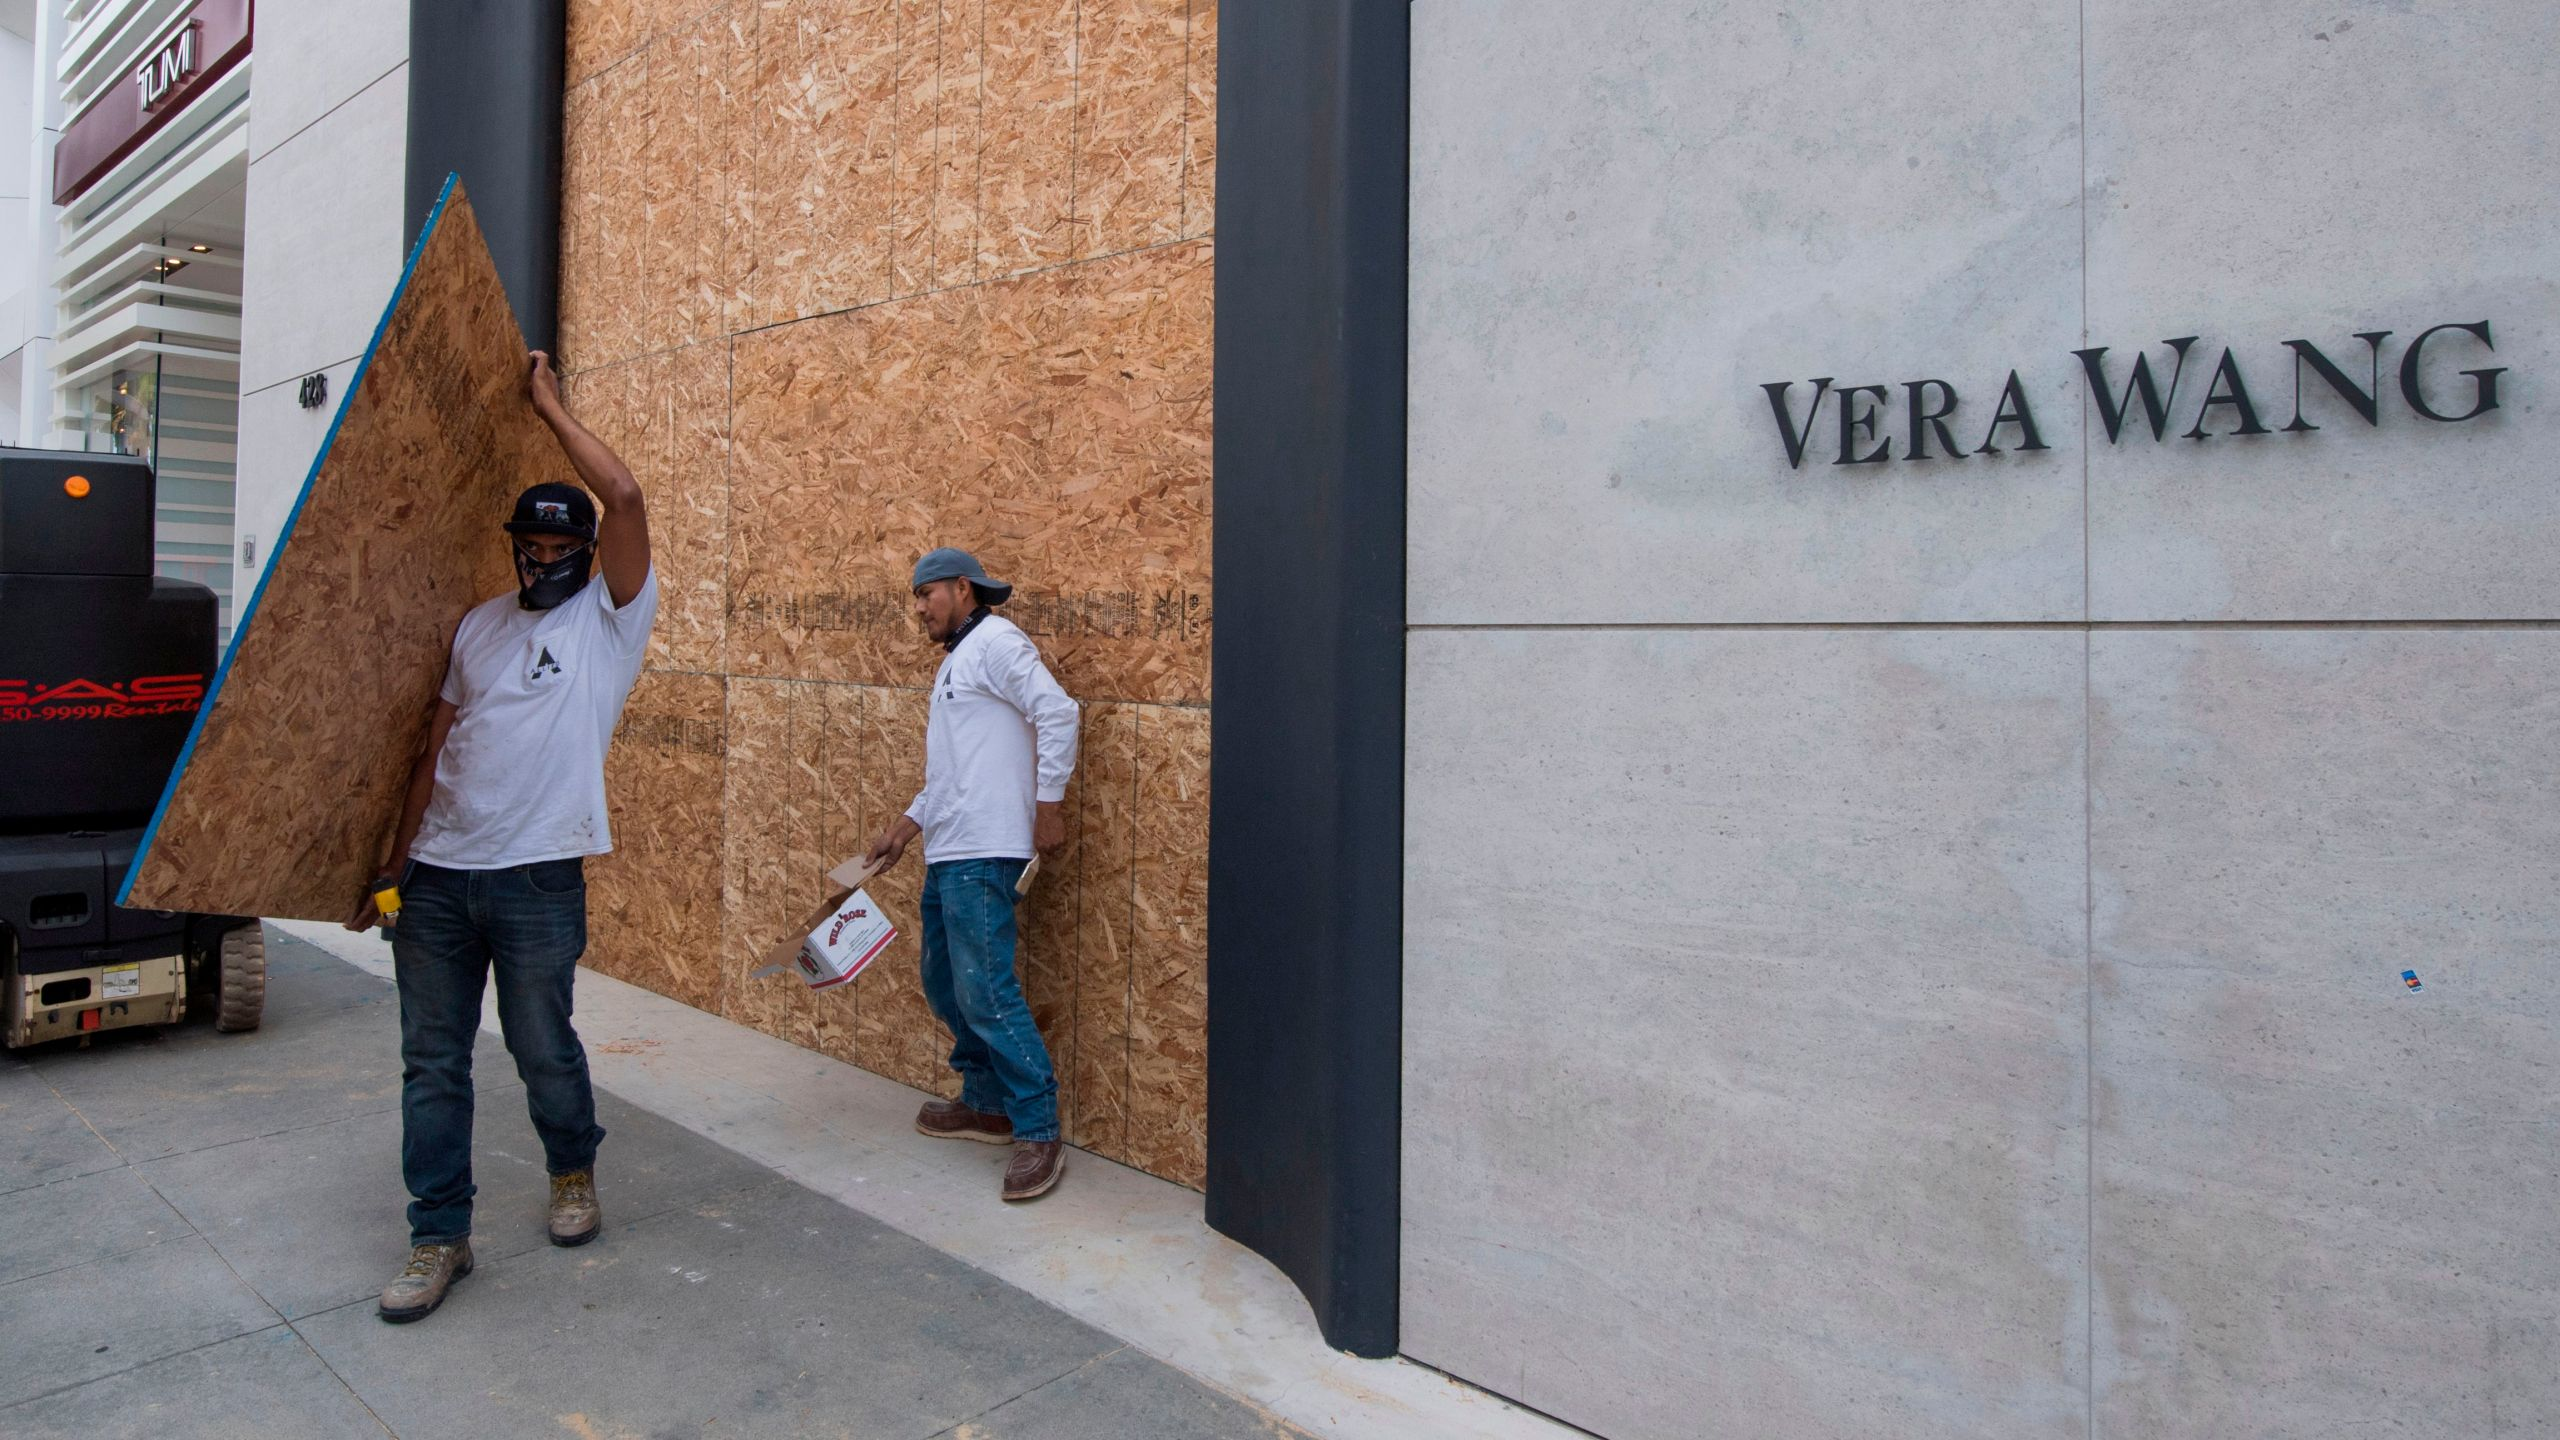 Workers put up protective boarding at a looted Vera Wang store on the iconic Rodeo Drive, after demonstrators protested the death of George Floyd in Beverly Hills, California on May 31, 2020. (Photo by Mark RALSTON / AFP) (Photo by MARK RALSTON/AFP via Getty Images)